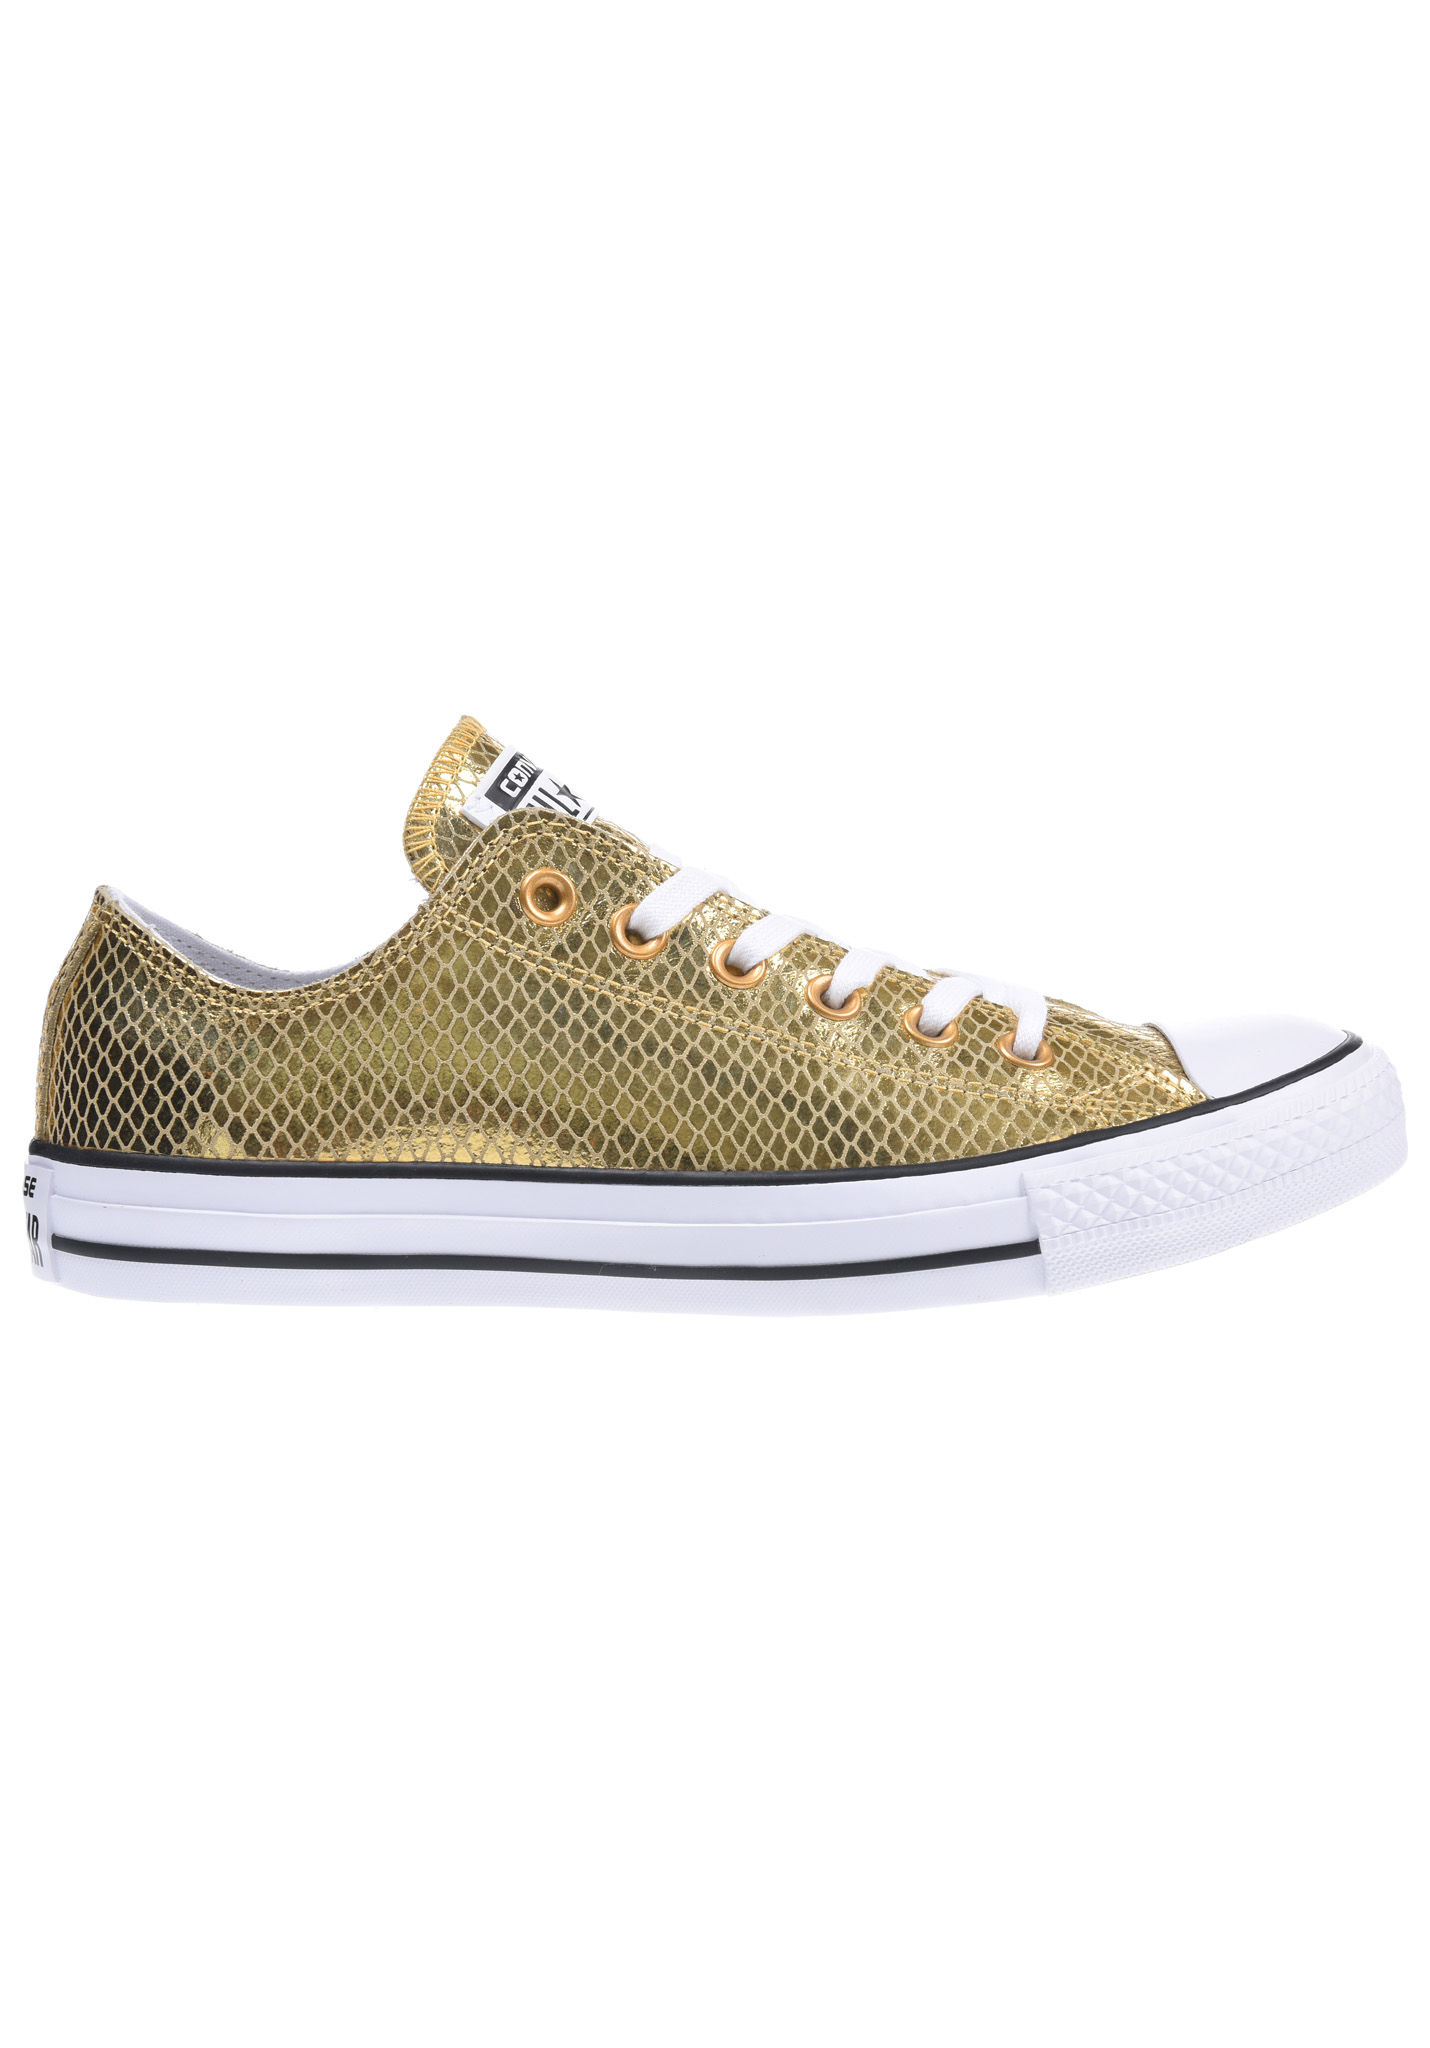 42c6da4998f3 Converse Chuck Taylor All Star Ox - Sneakers for Women - Gold - Planet  Sports